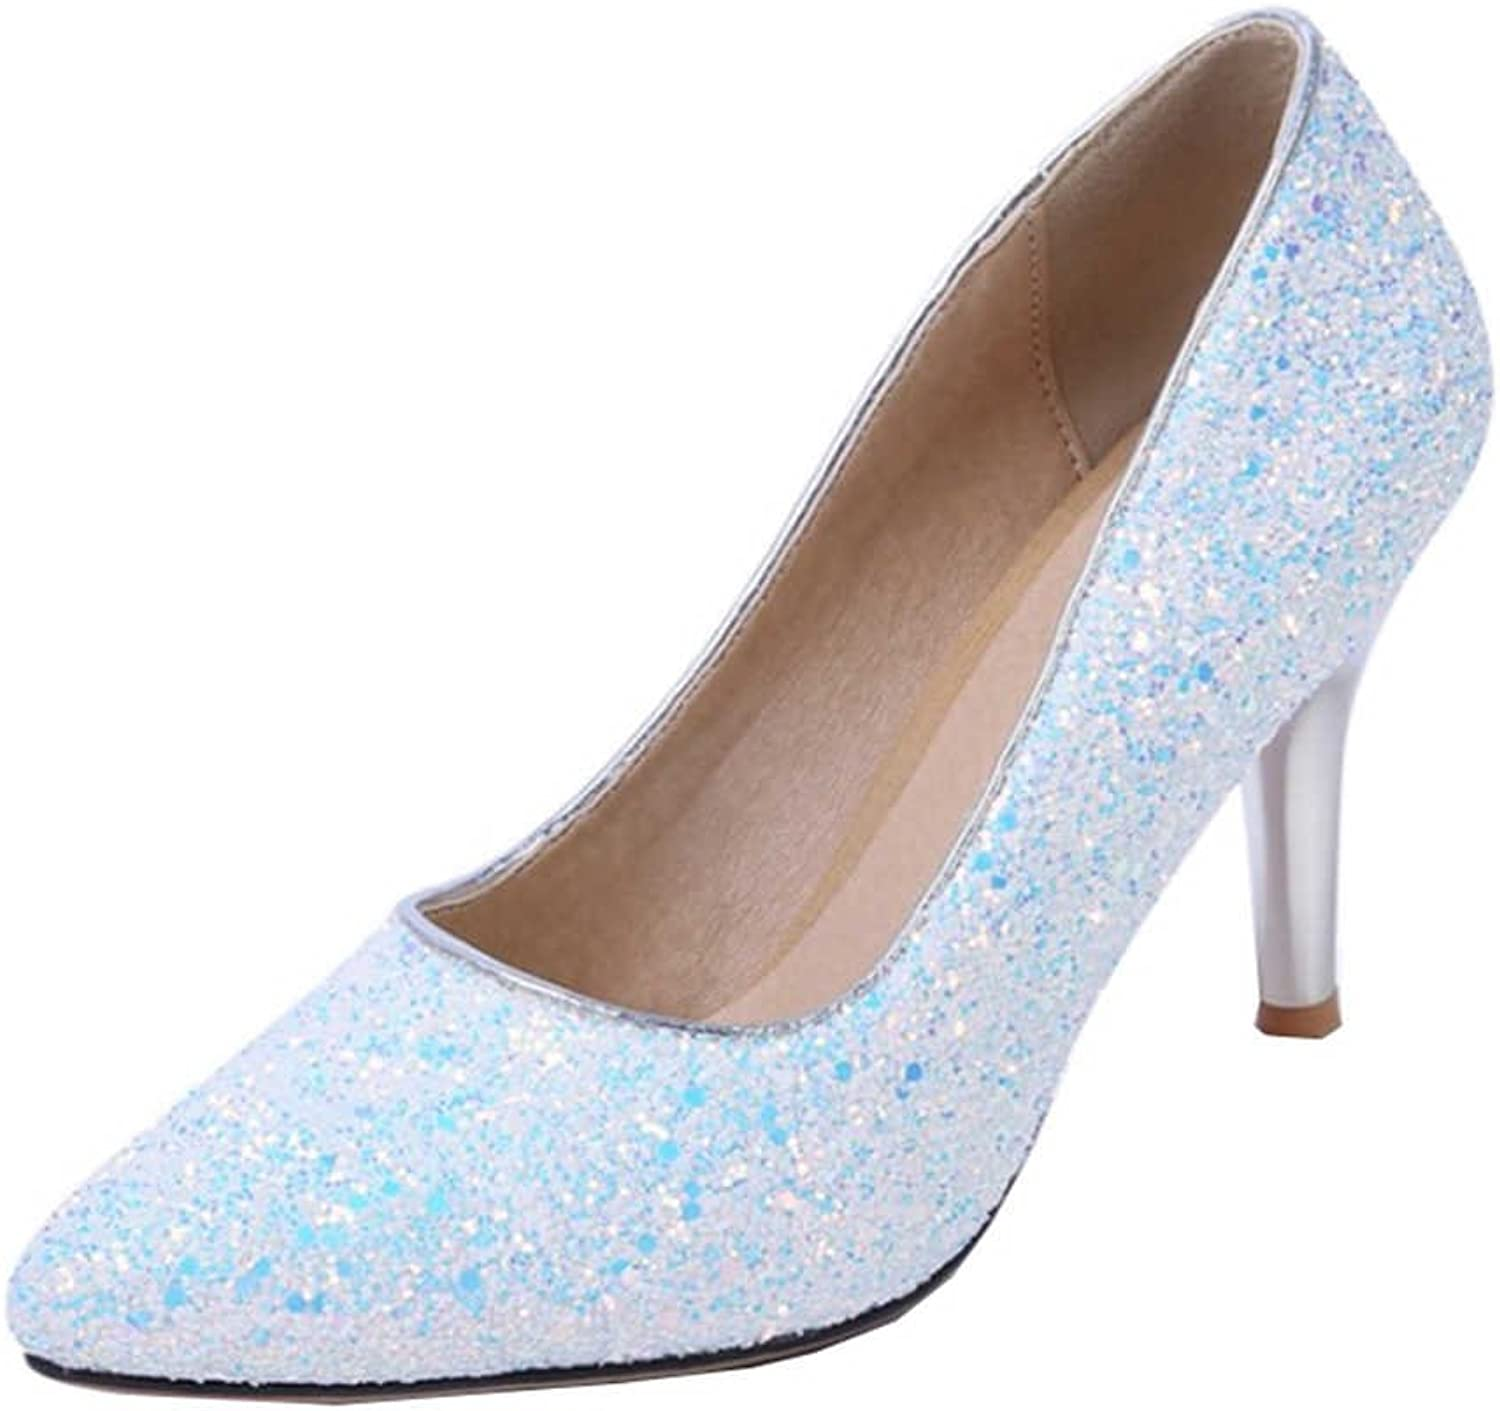 Onewus Uniform Dress shoes with Bling Materail and Thin Heel with Mini Large Size Available